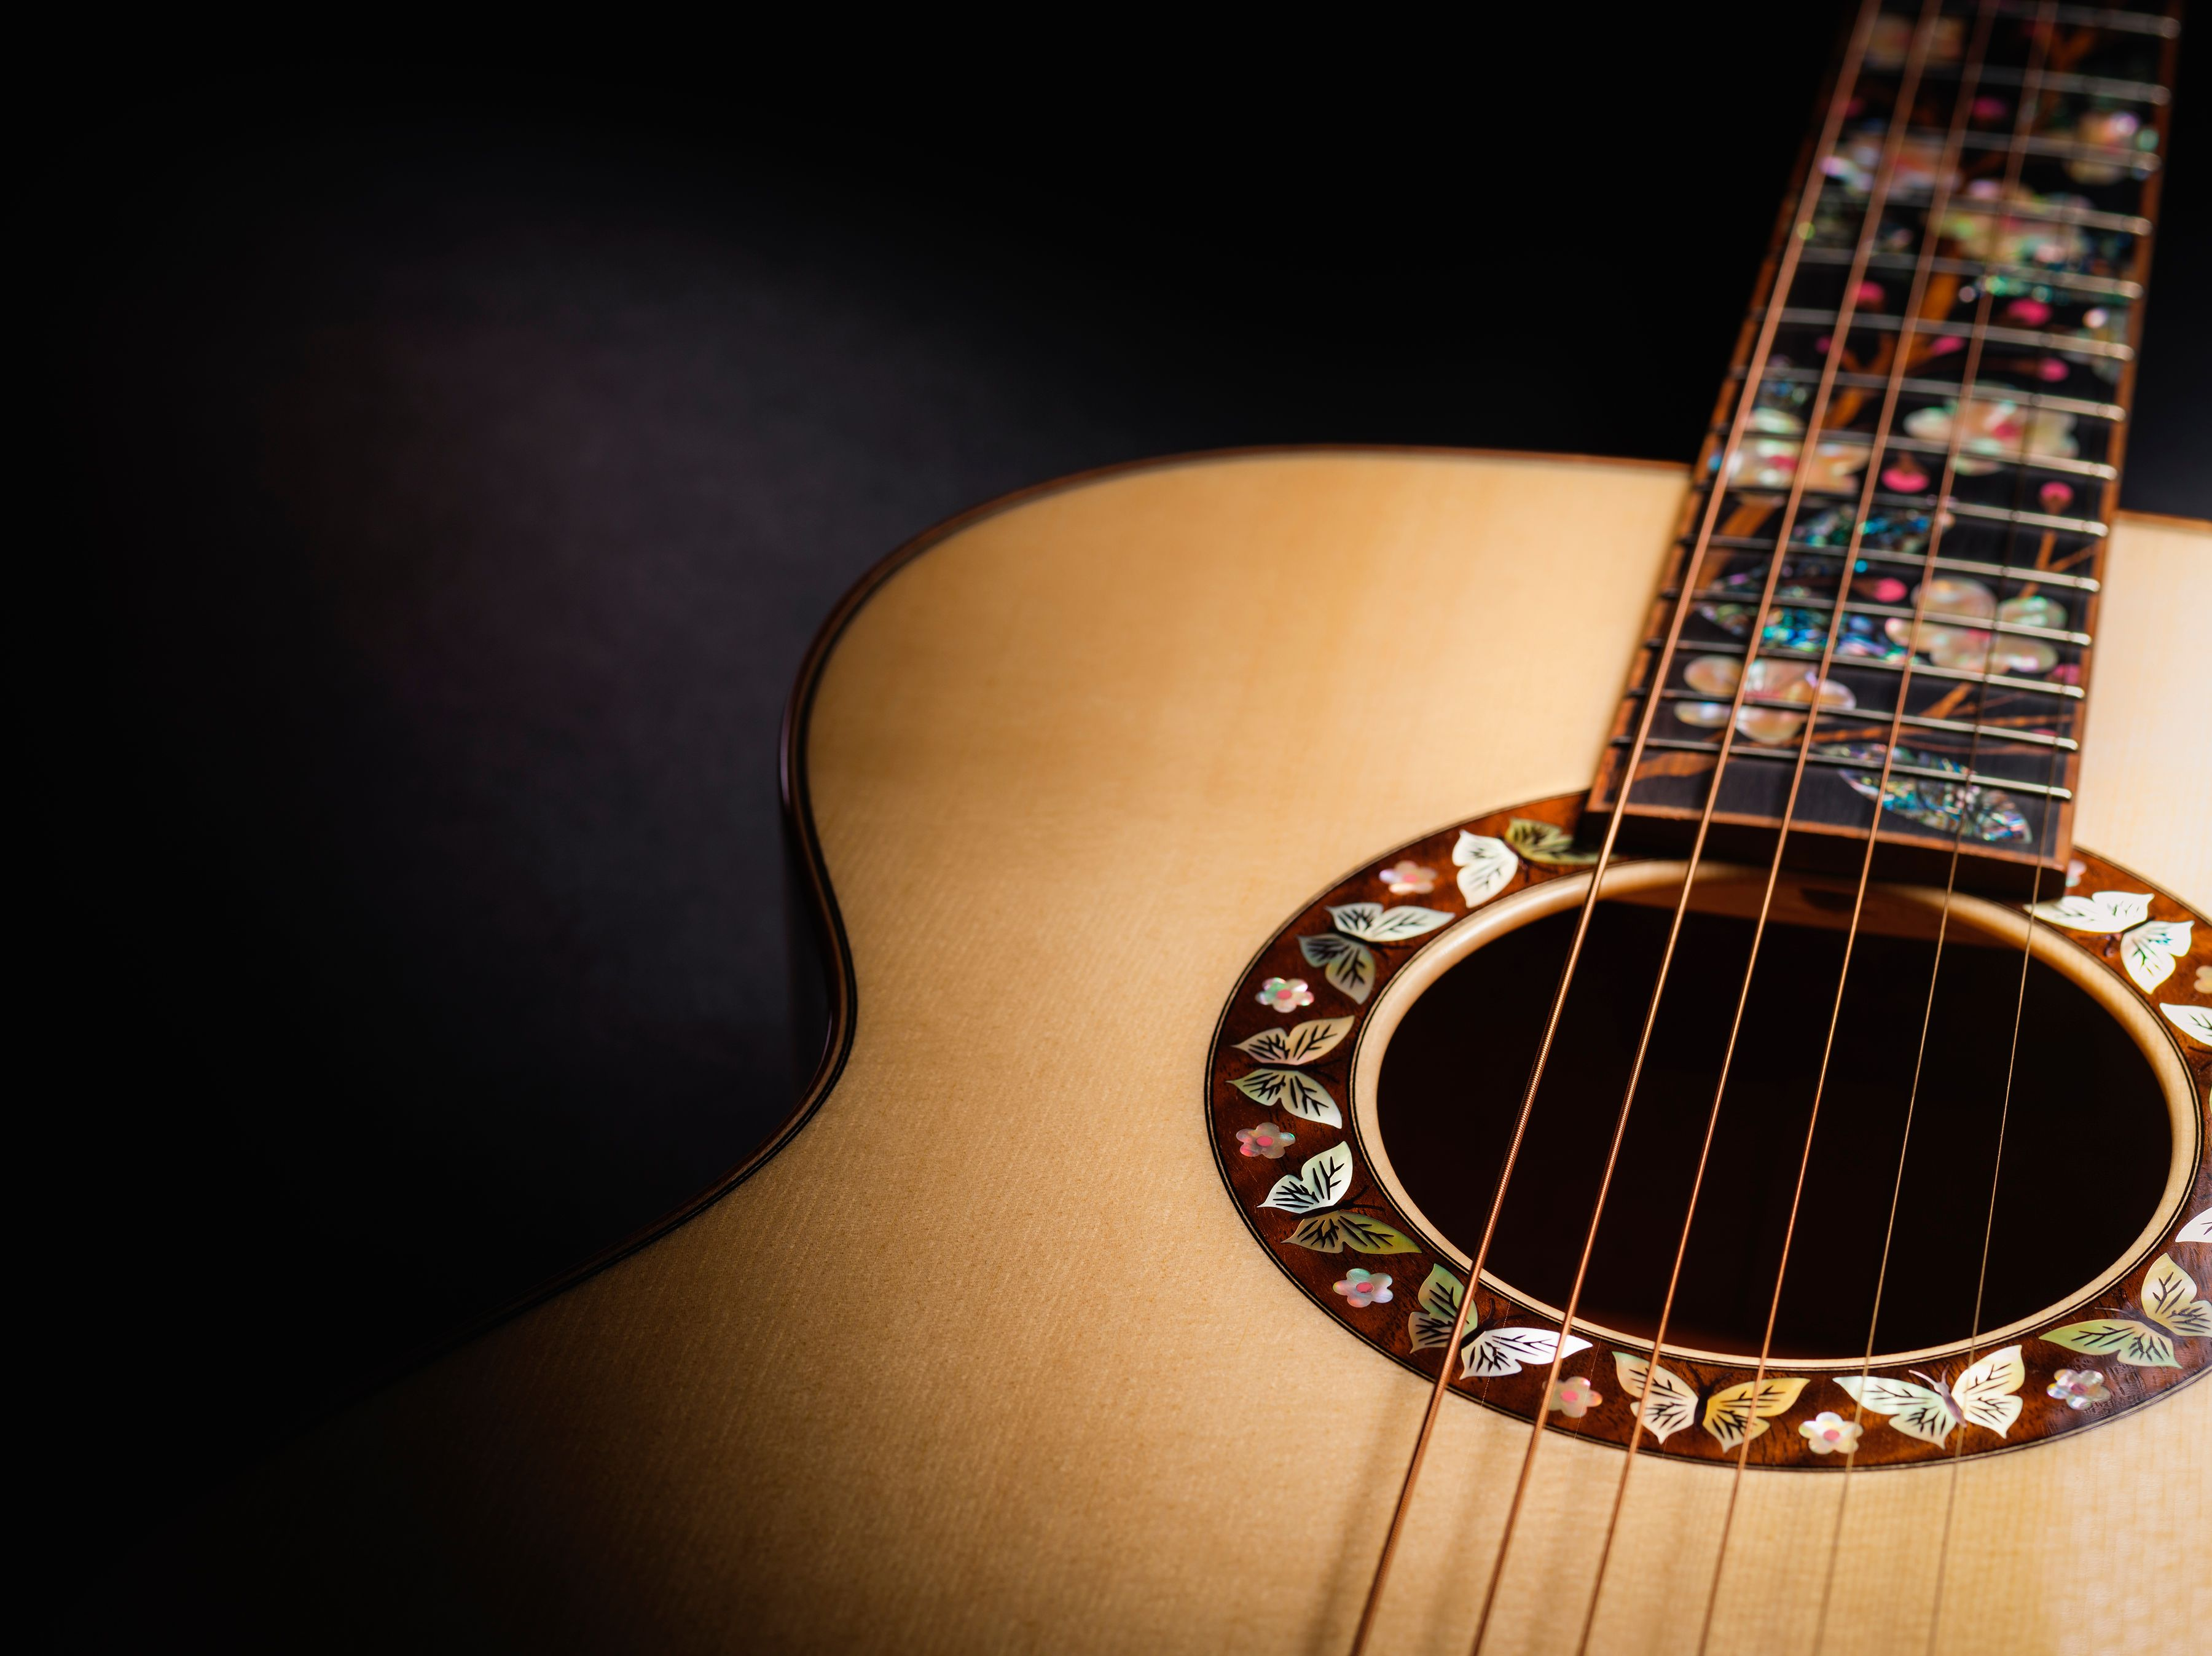 Martin Guitar Personalized Inlays